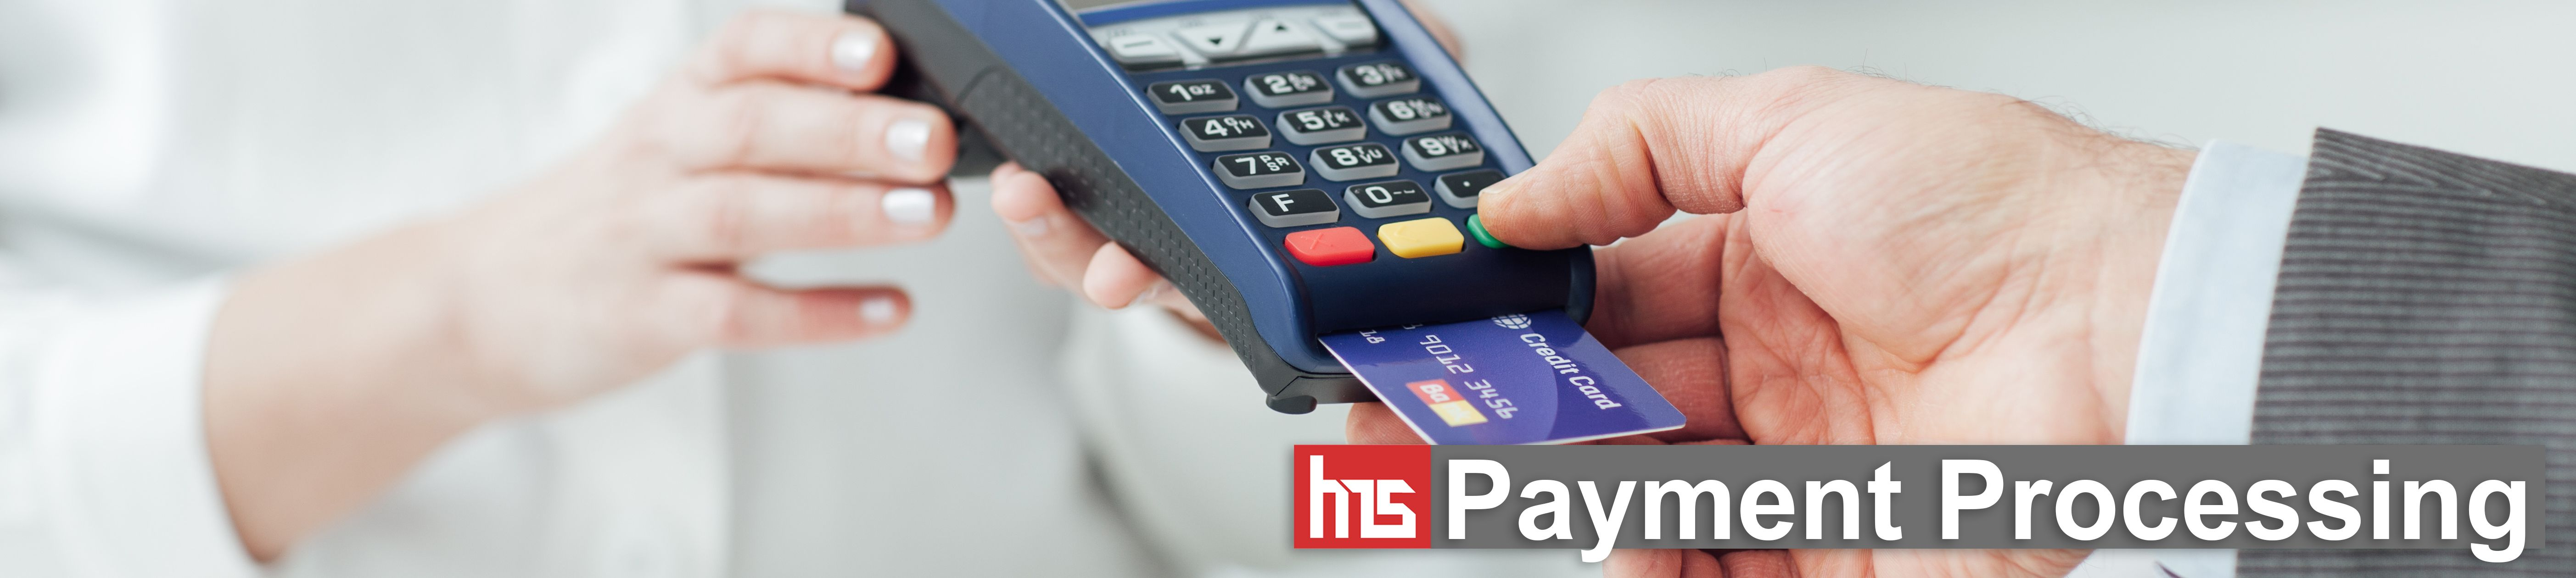 Host Merchant Services payment processing, point of sale, and credit ...